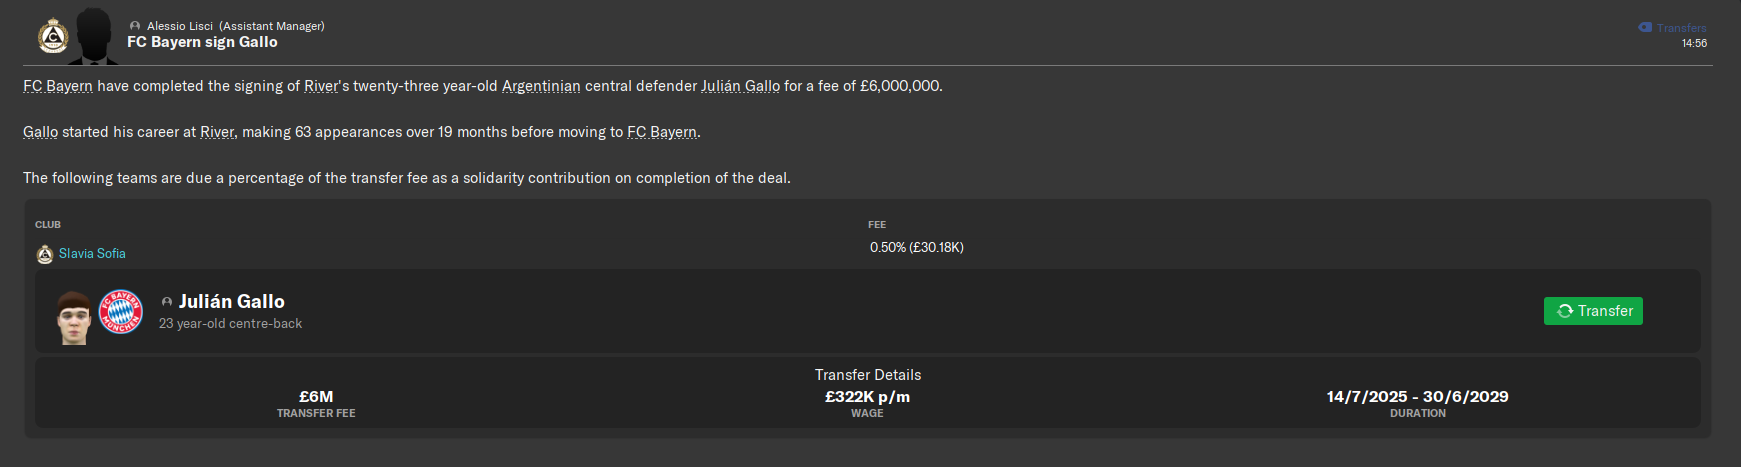 Gallo was signed by Bayern 6M.png